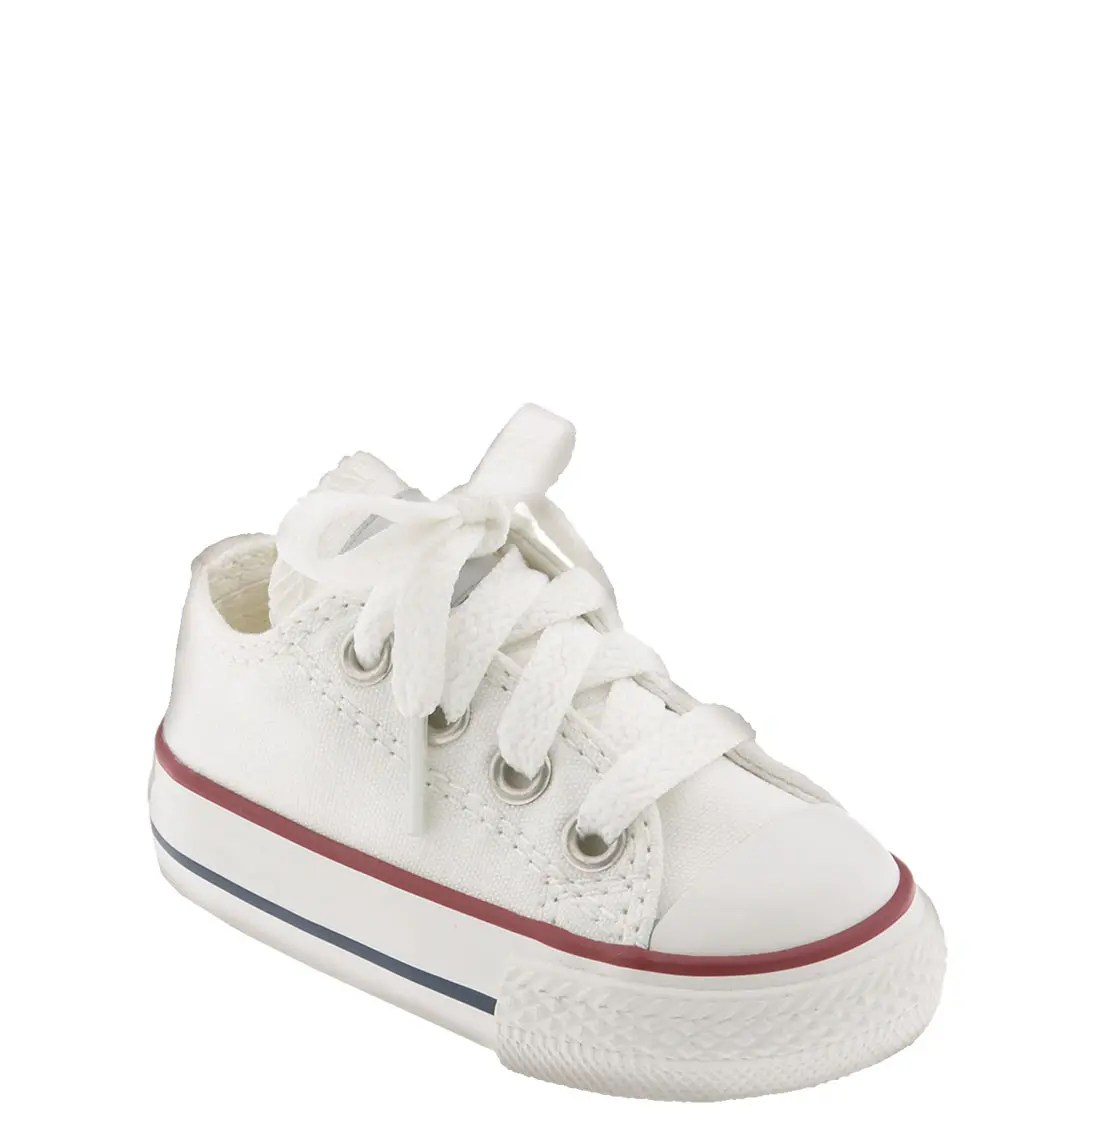 Infant Sneakers Baby Walker Toddler Shoes Nordstrom